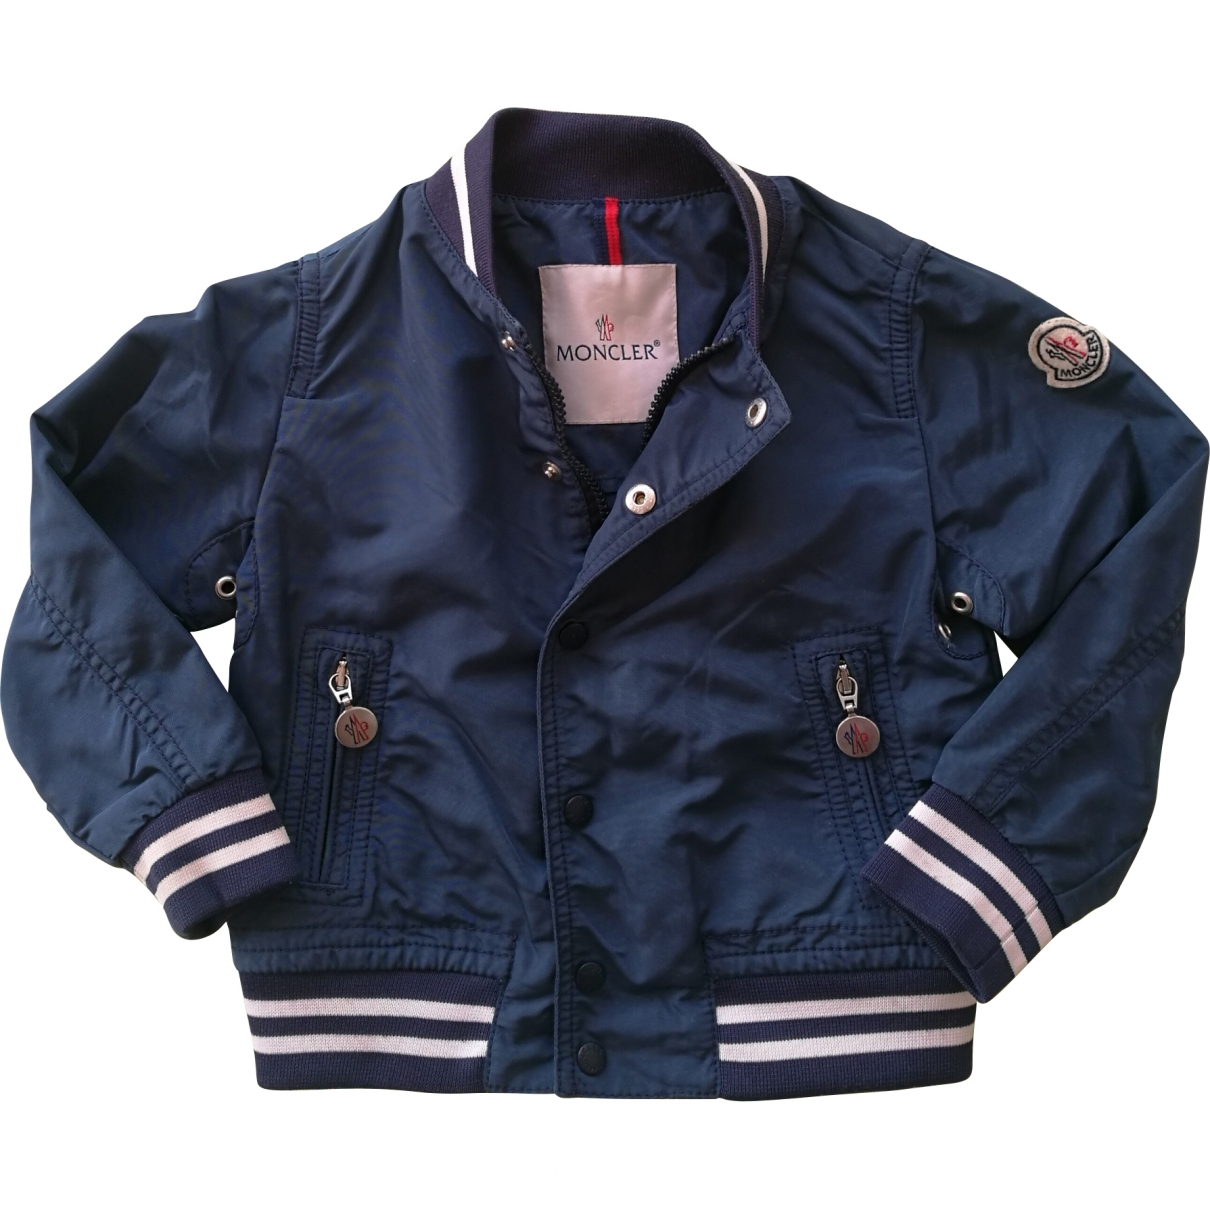 Moncler \N Blue jacket & coat for Kids 3 years - up to 98cm FR